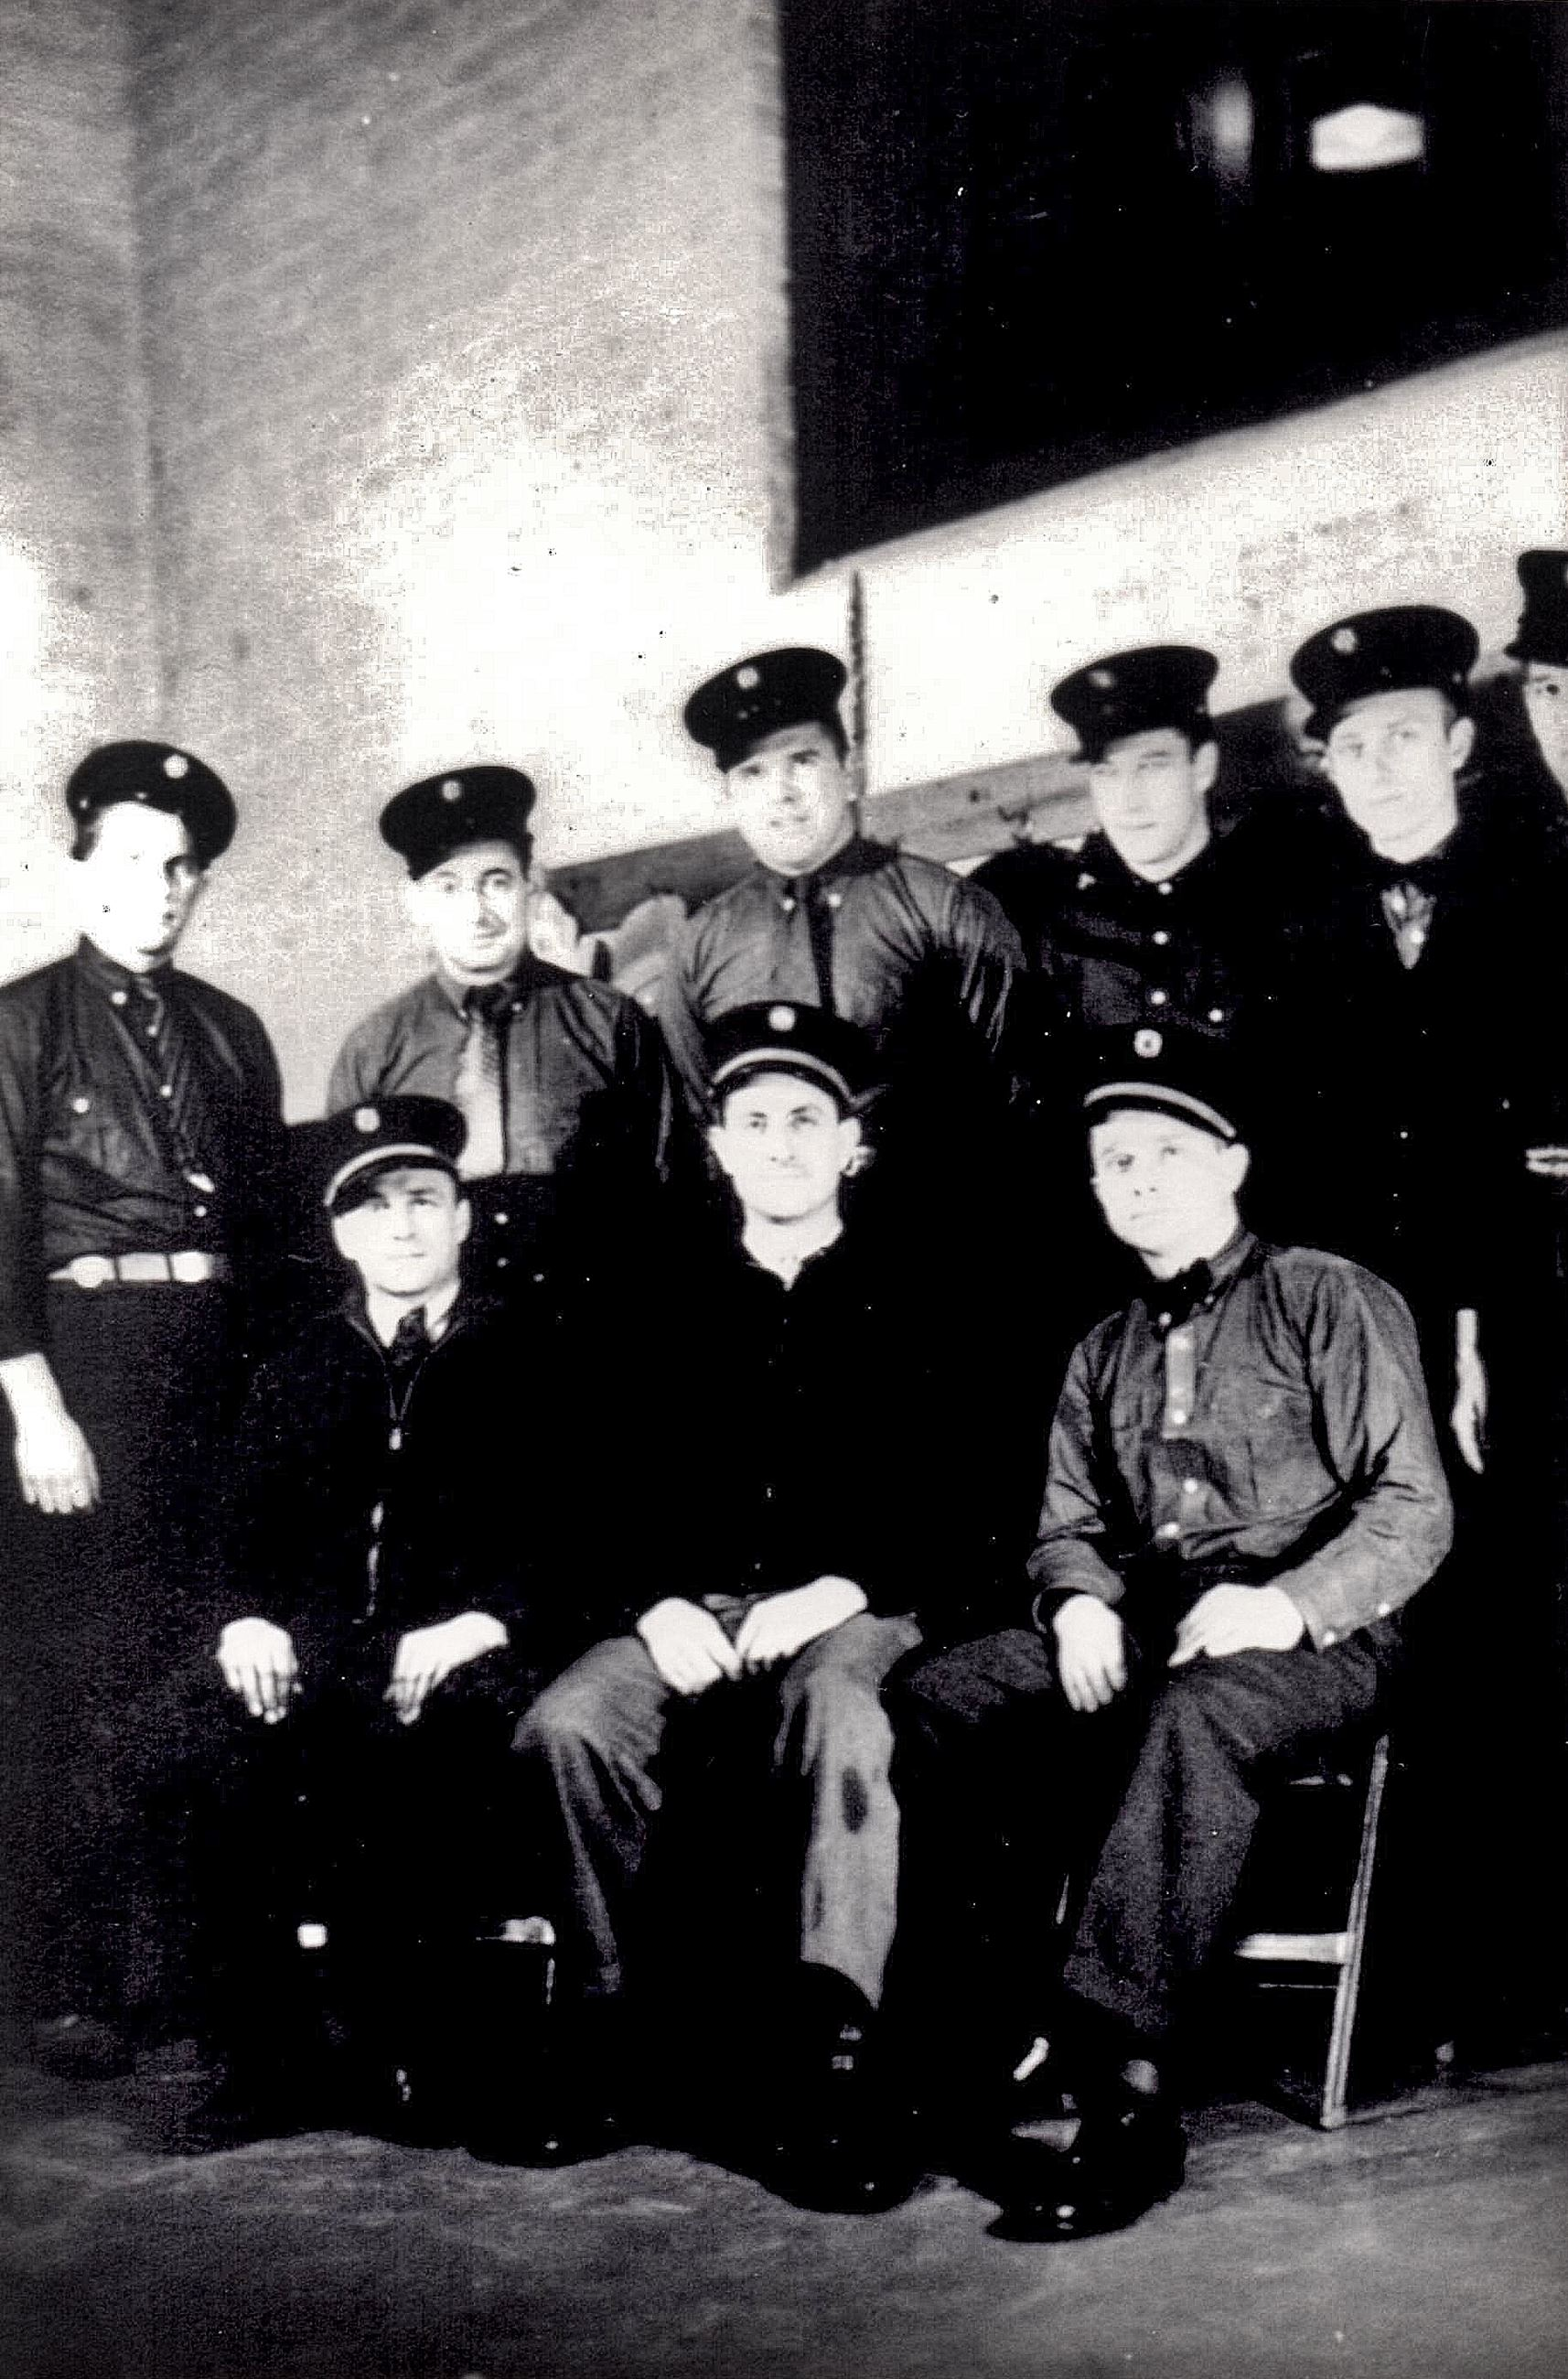 Villa Park firefighters pose for a photo in 1938.